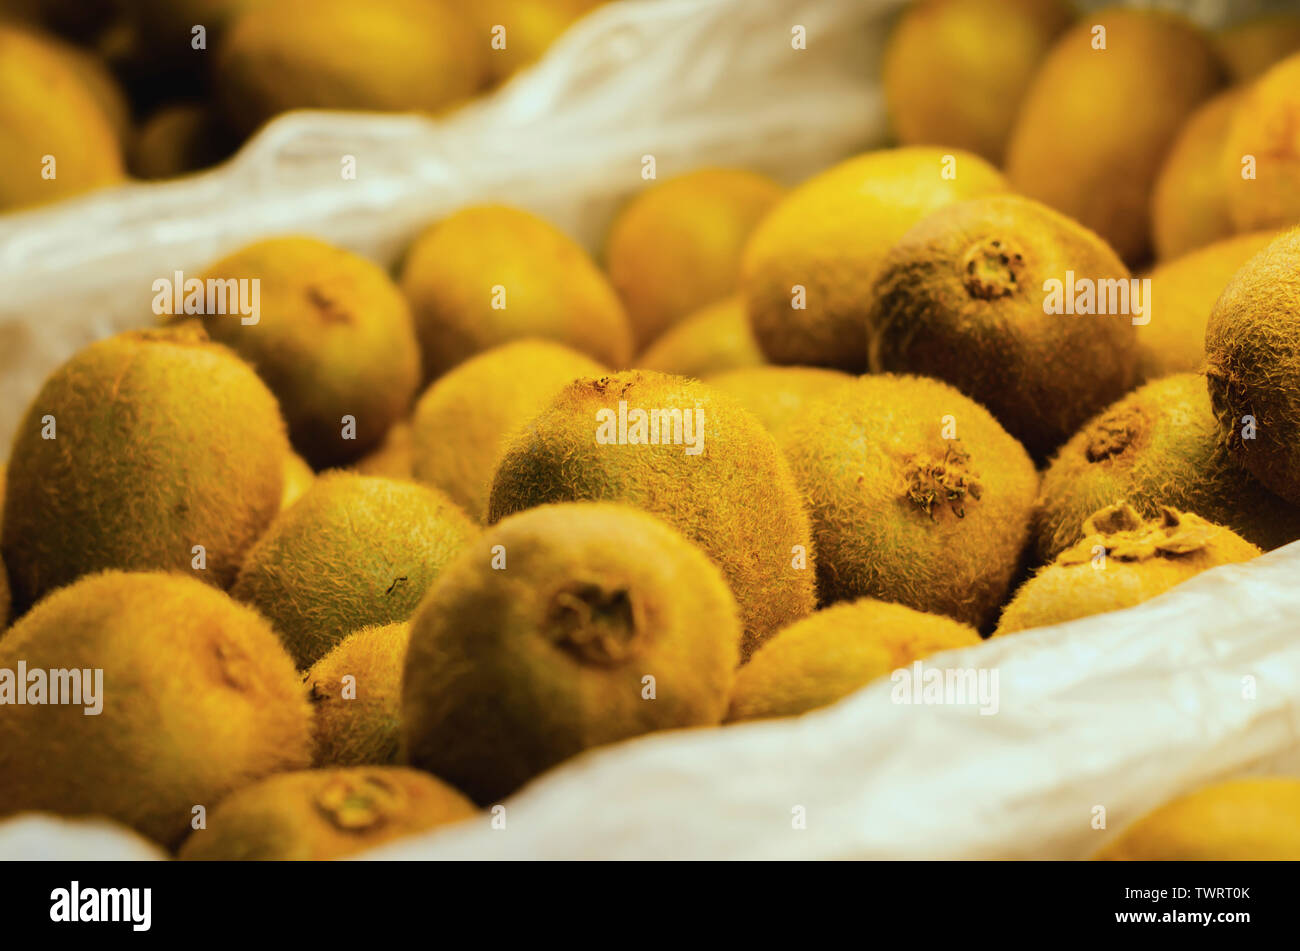 kiwis on retail sale in supermarket shelf with beautiful flashes of natural lights - Stock Image